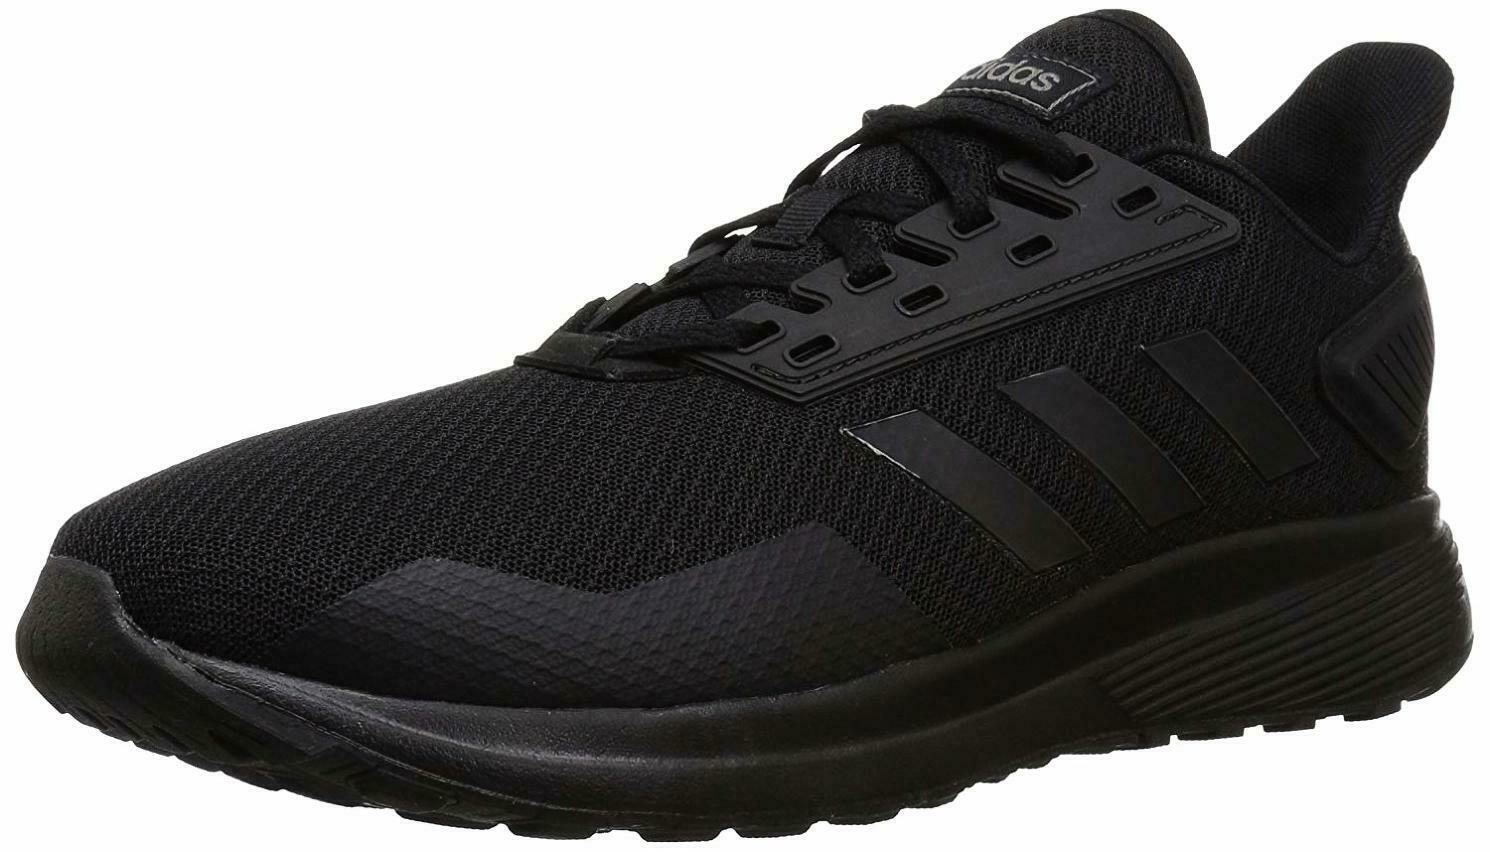 Adidas Men's Duramo 9 Wide Running shoes - Choose SZ color